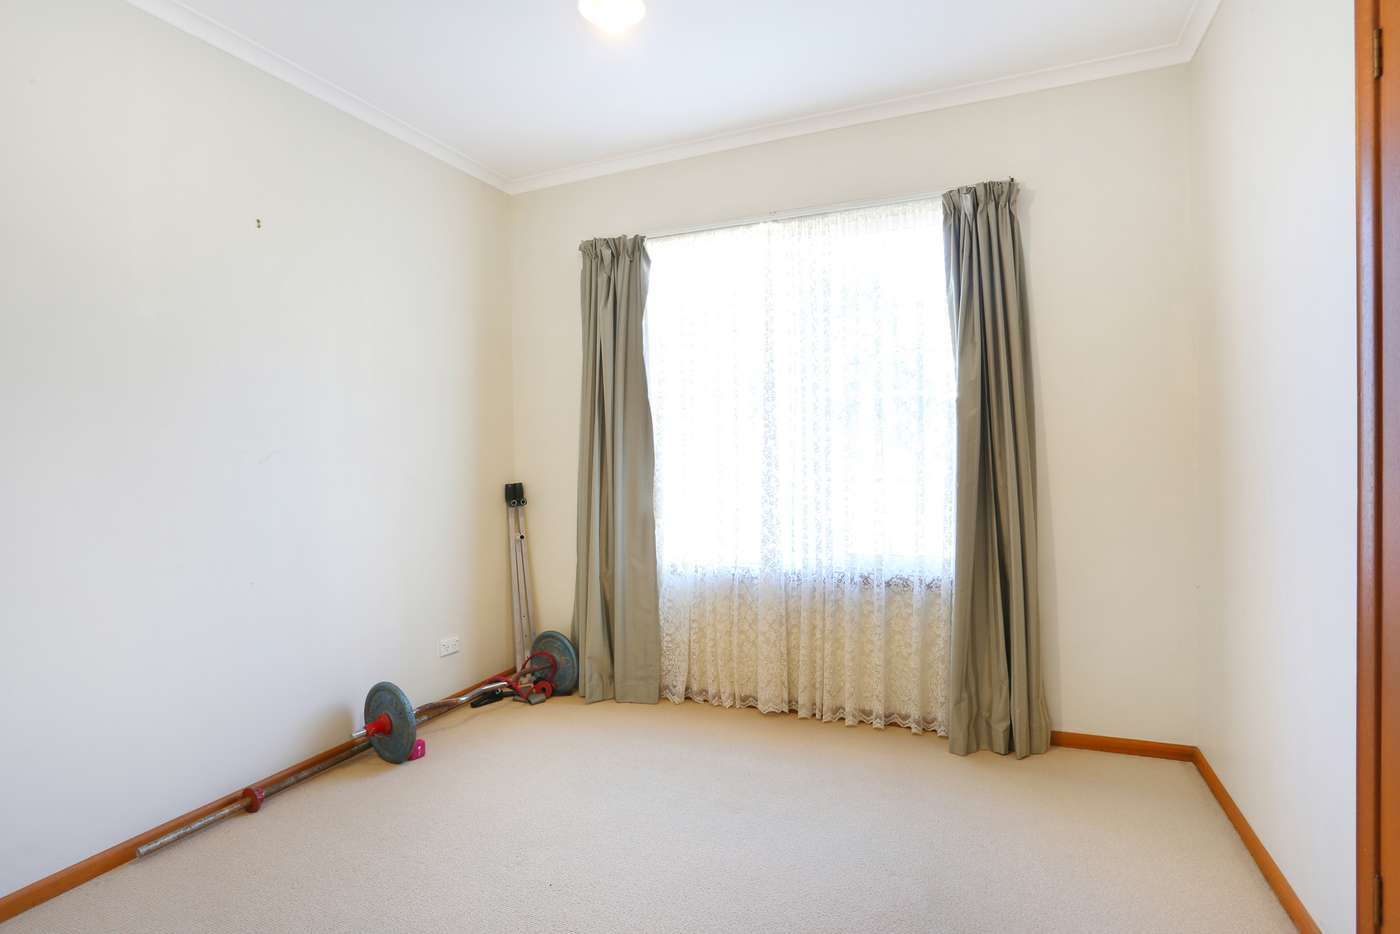 Seventh view of Homely unit listing, 2/250 Myers Street, Geelong VIC 3220